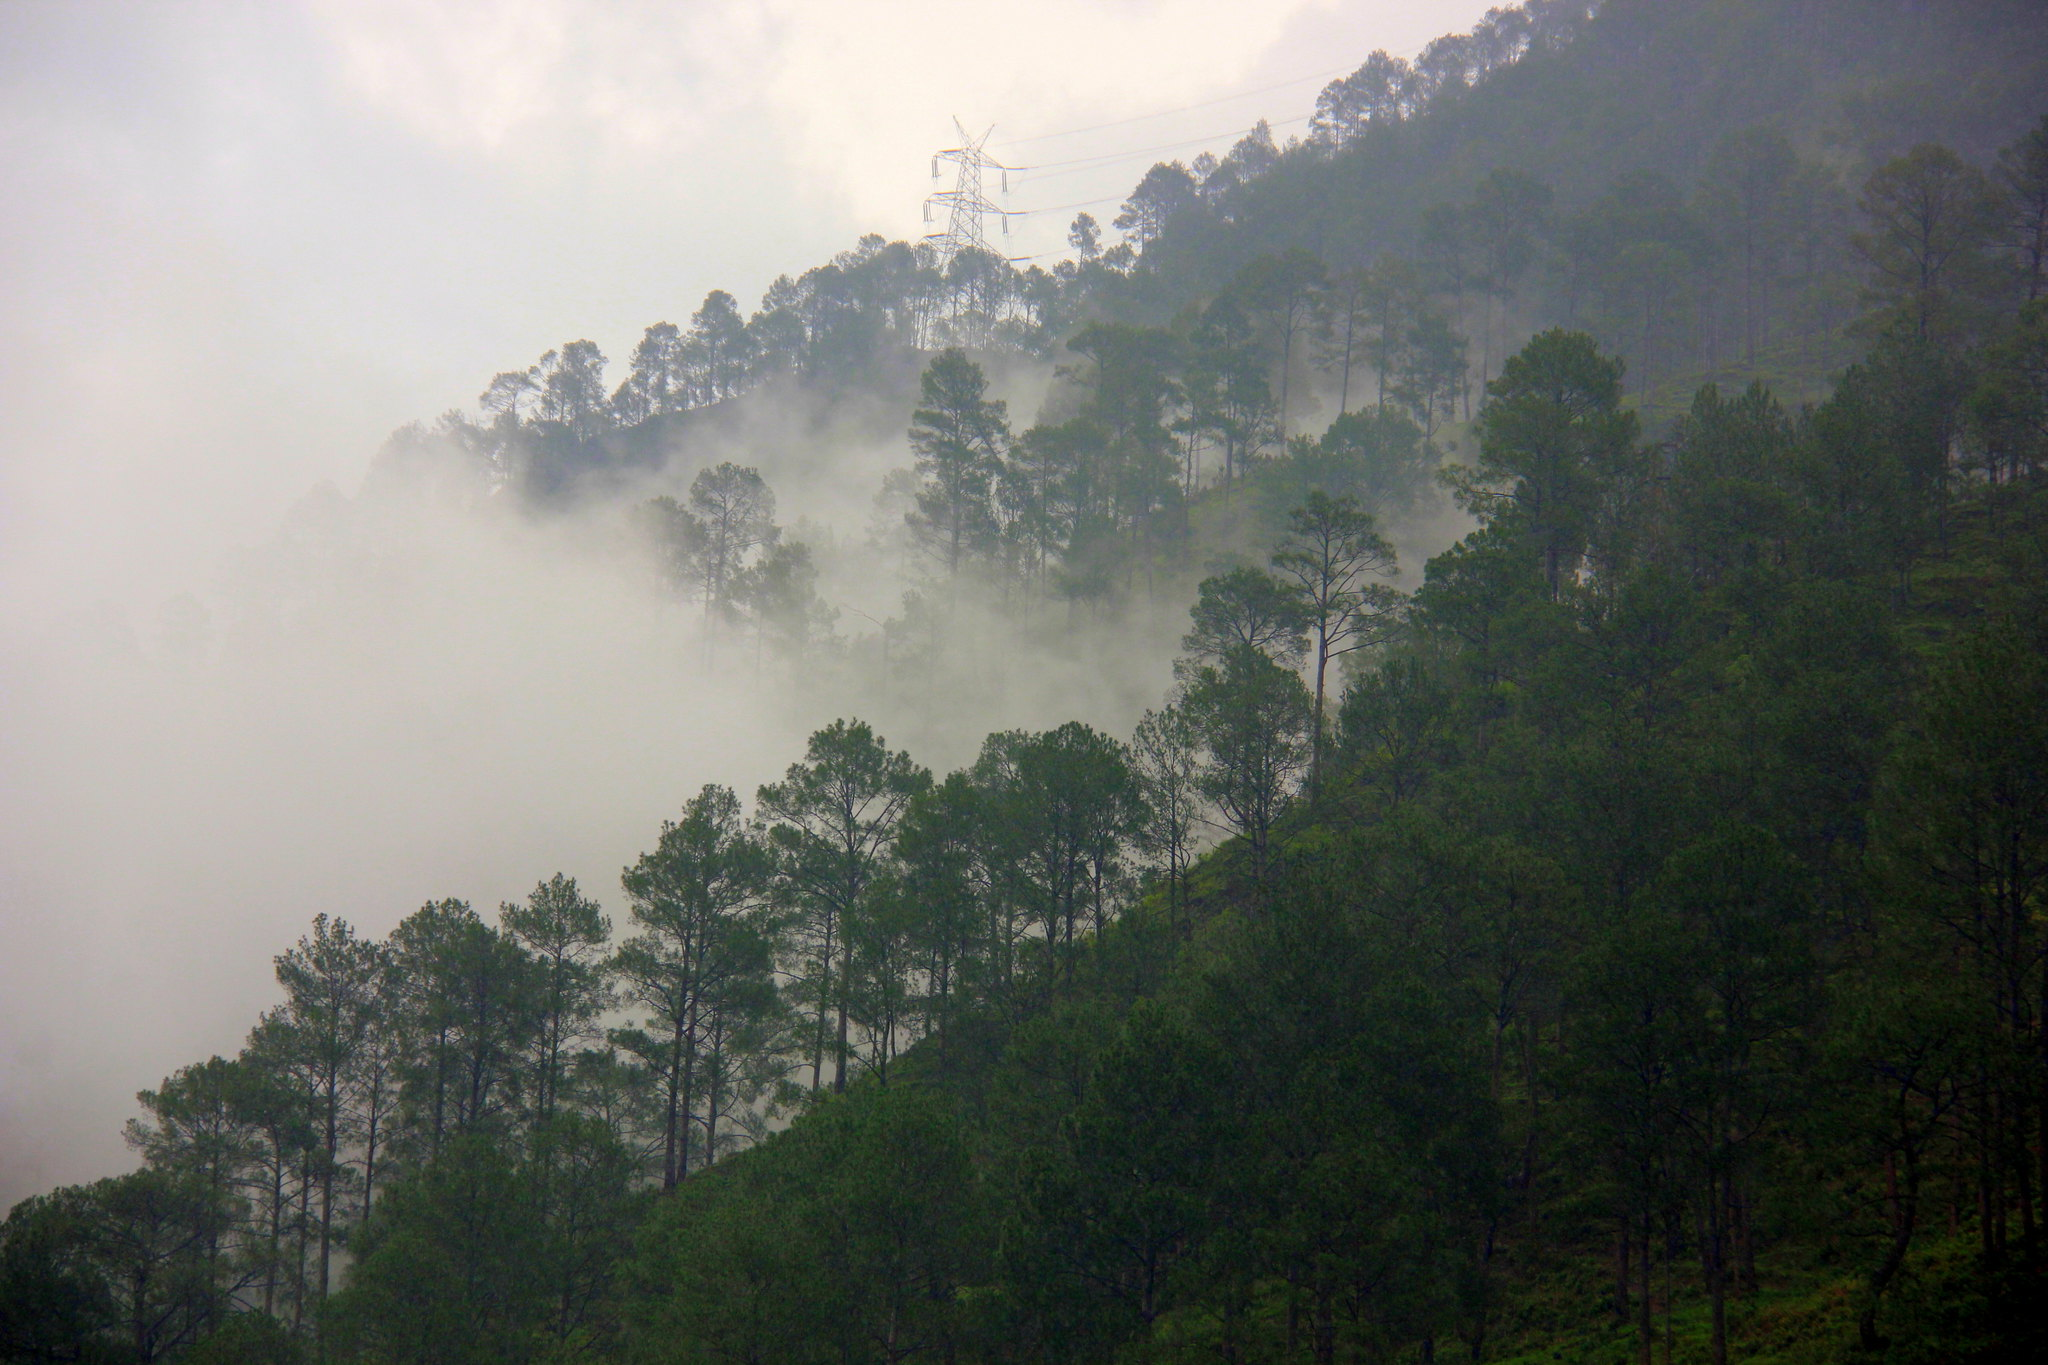 Misty mountains can be seen at the uttarakhand prayags after rain